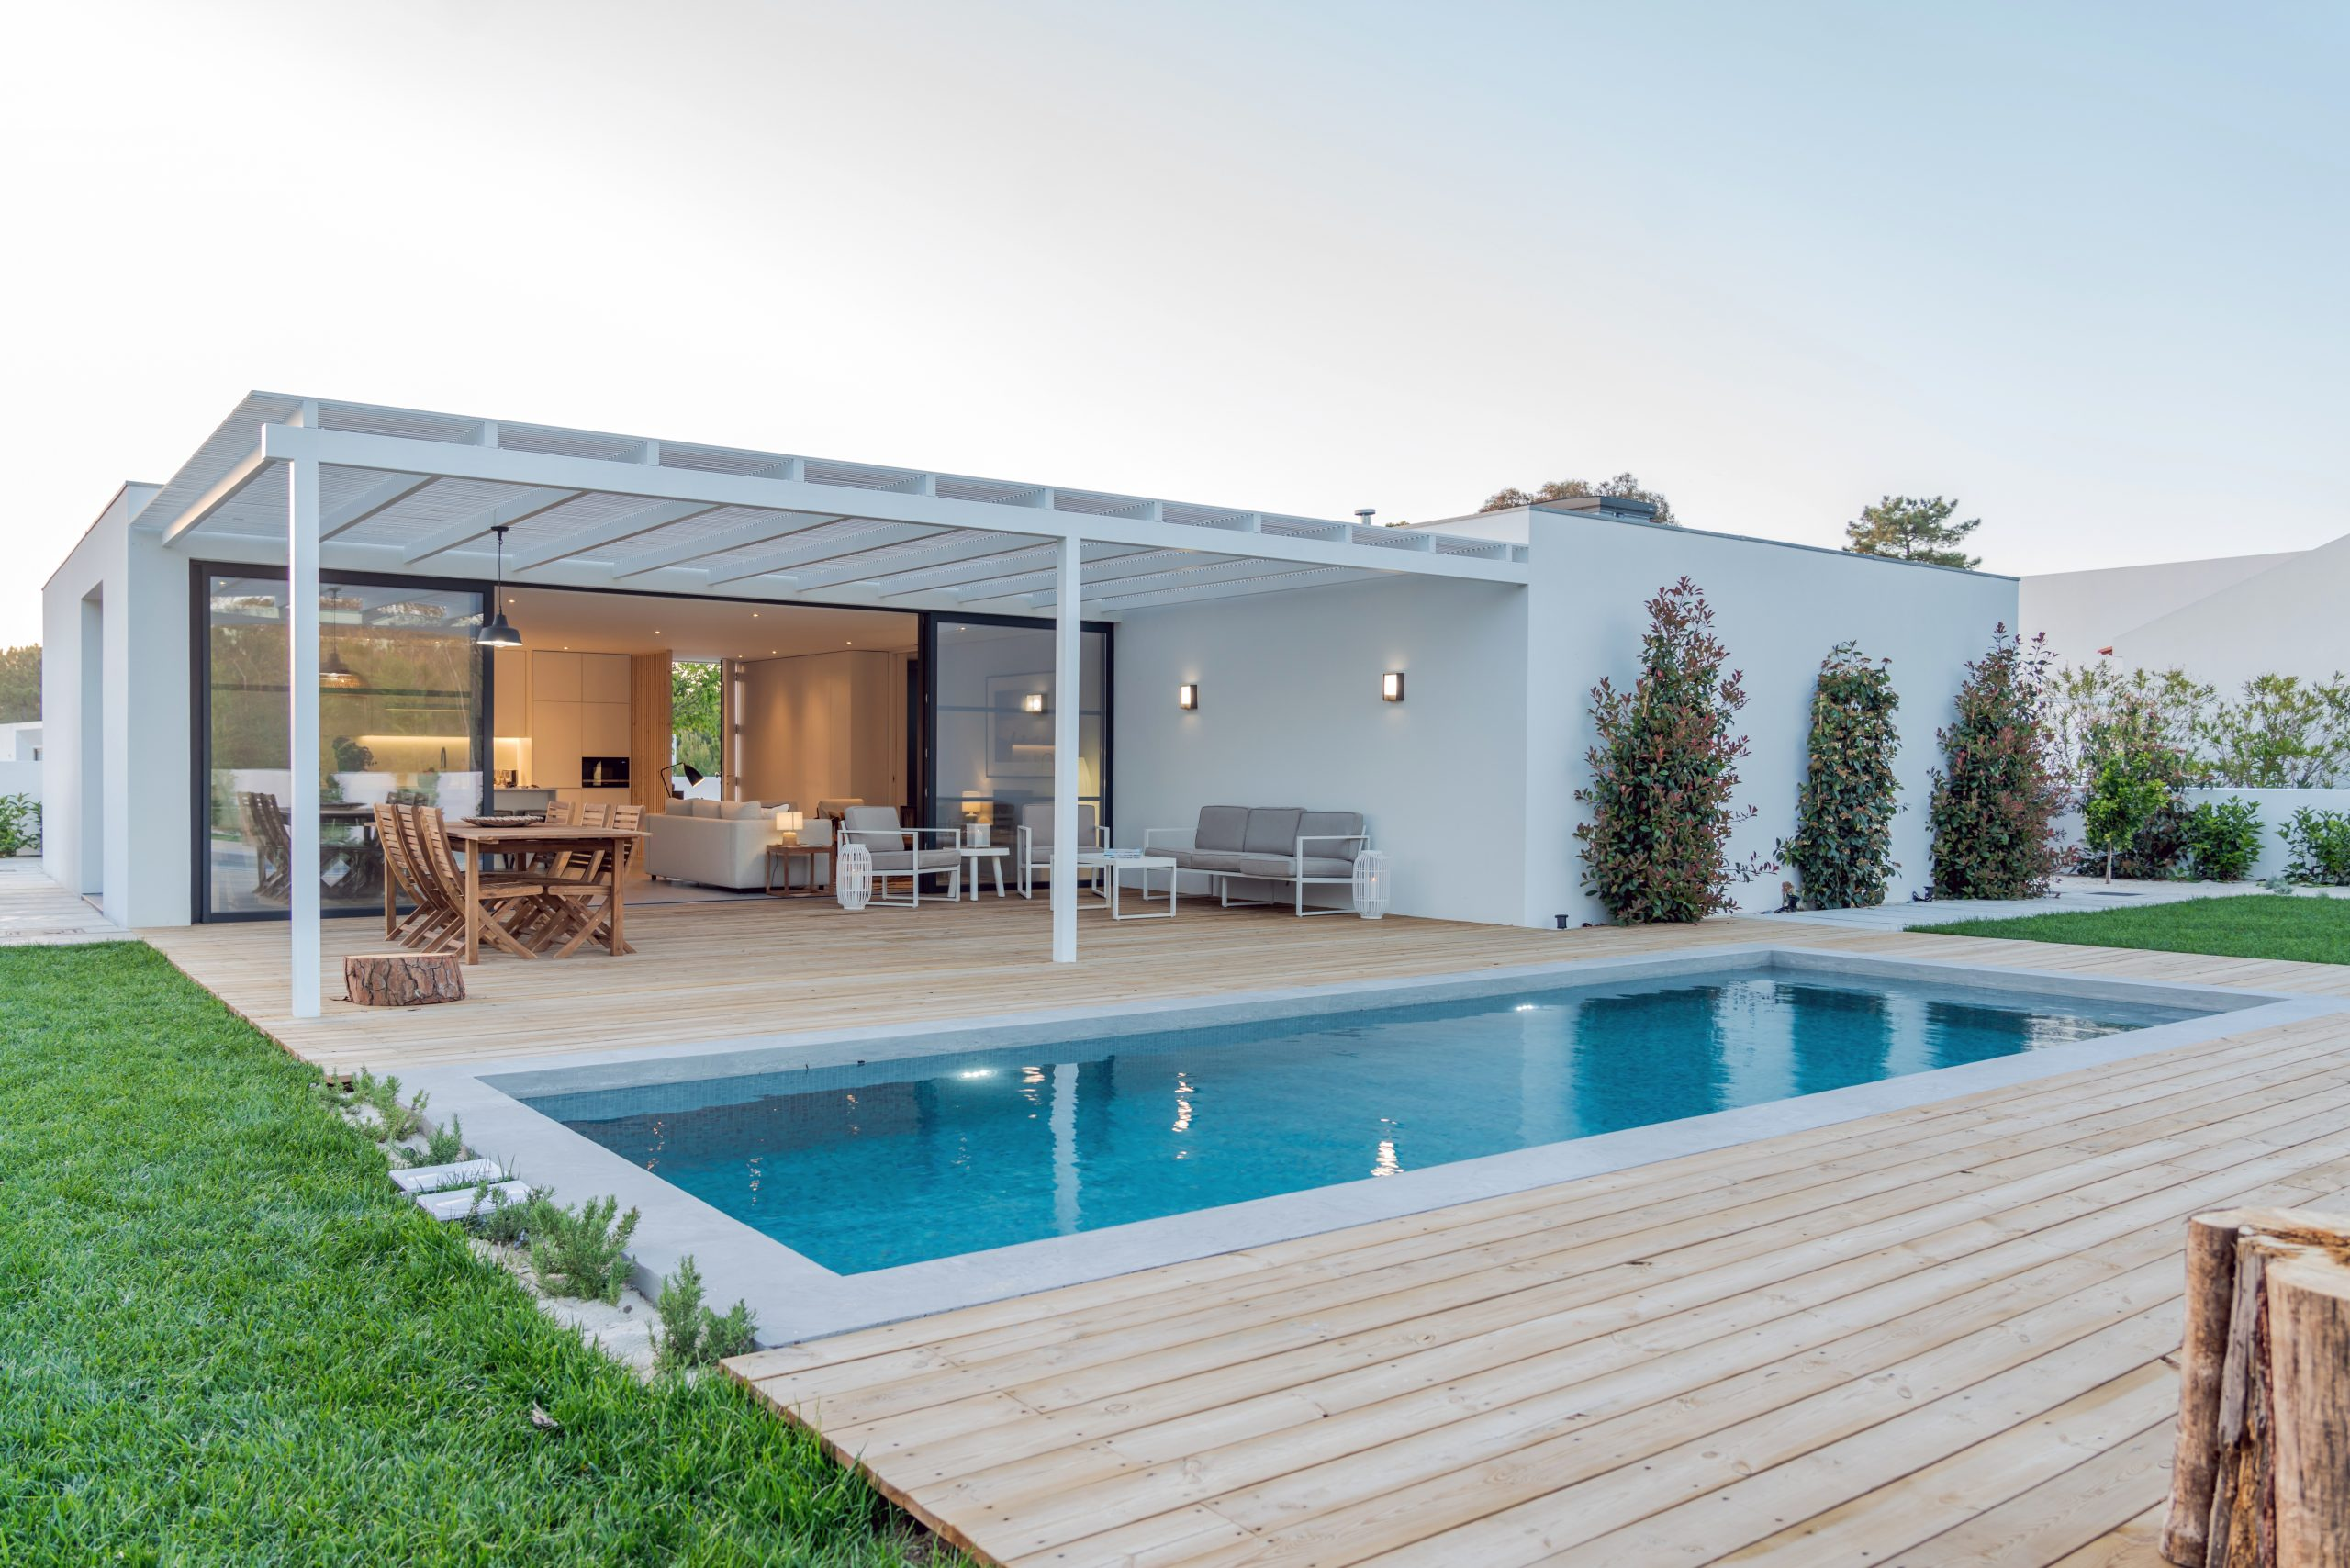 Modern,Villa,With,Pool,And,Deck,With,Interior